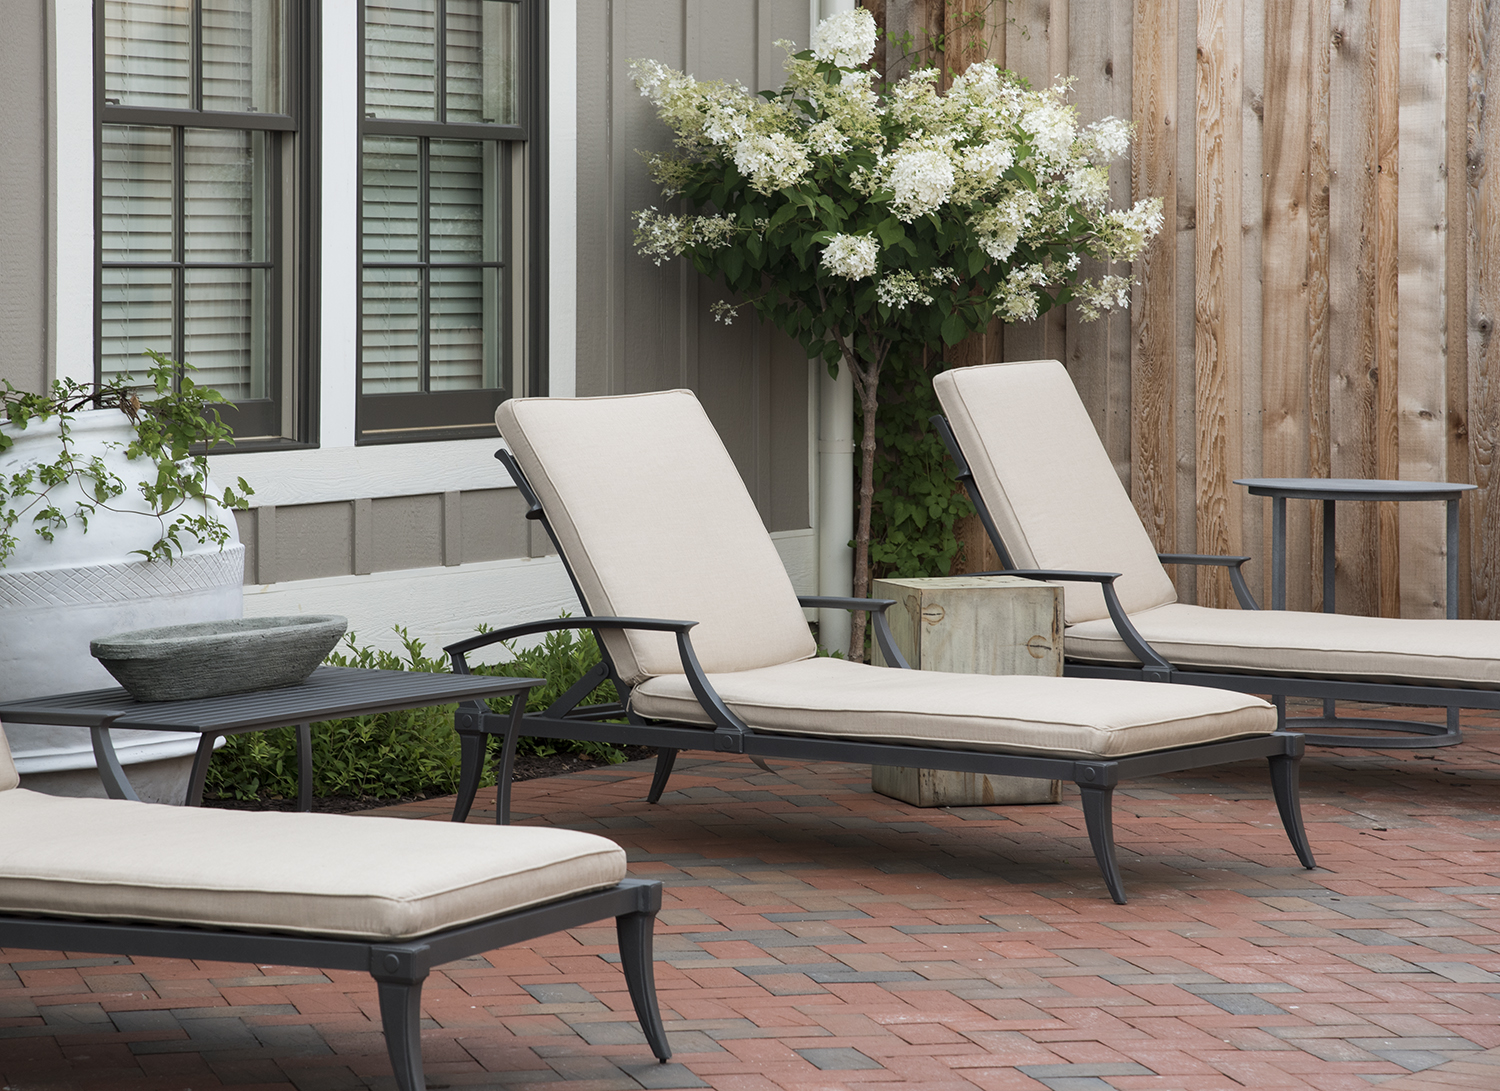 Guests of the Spa can relax in the peaceful outdoor courtyard before or after services.